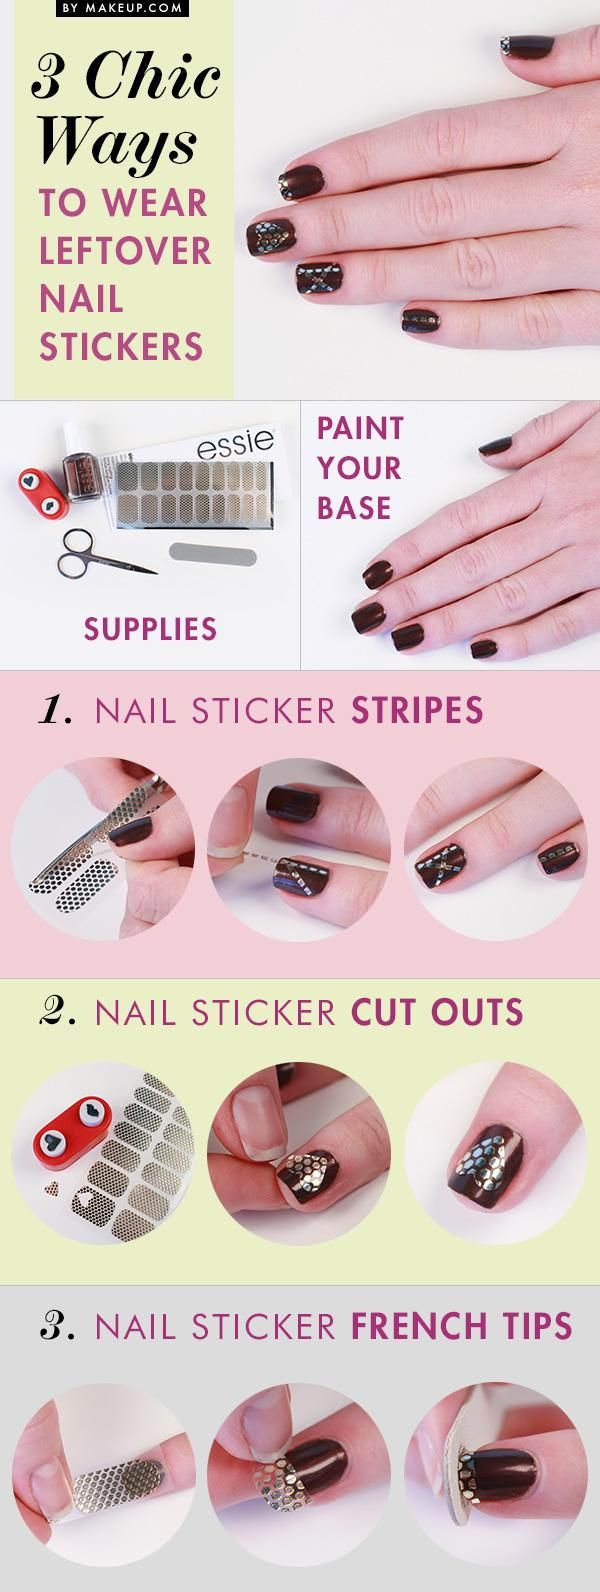 Nail Stickers Tutorial I #nails #nailpolosh #essie #beauty #cosmetics #makeup #howto #tutorial www.pampadour.com